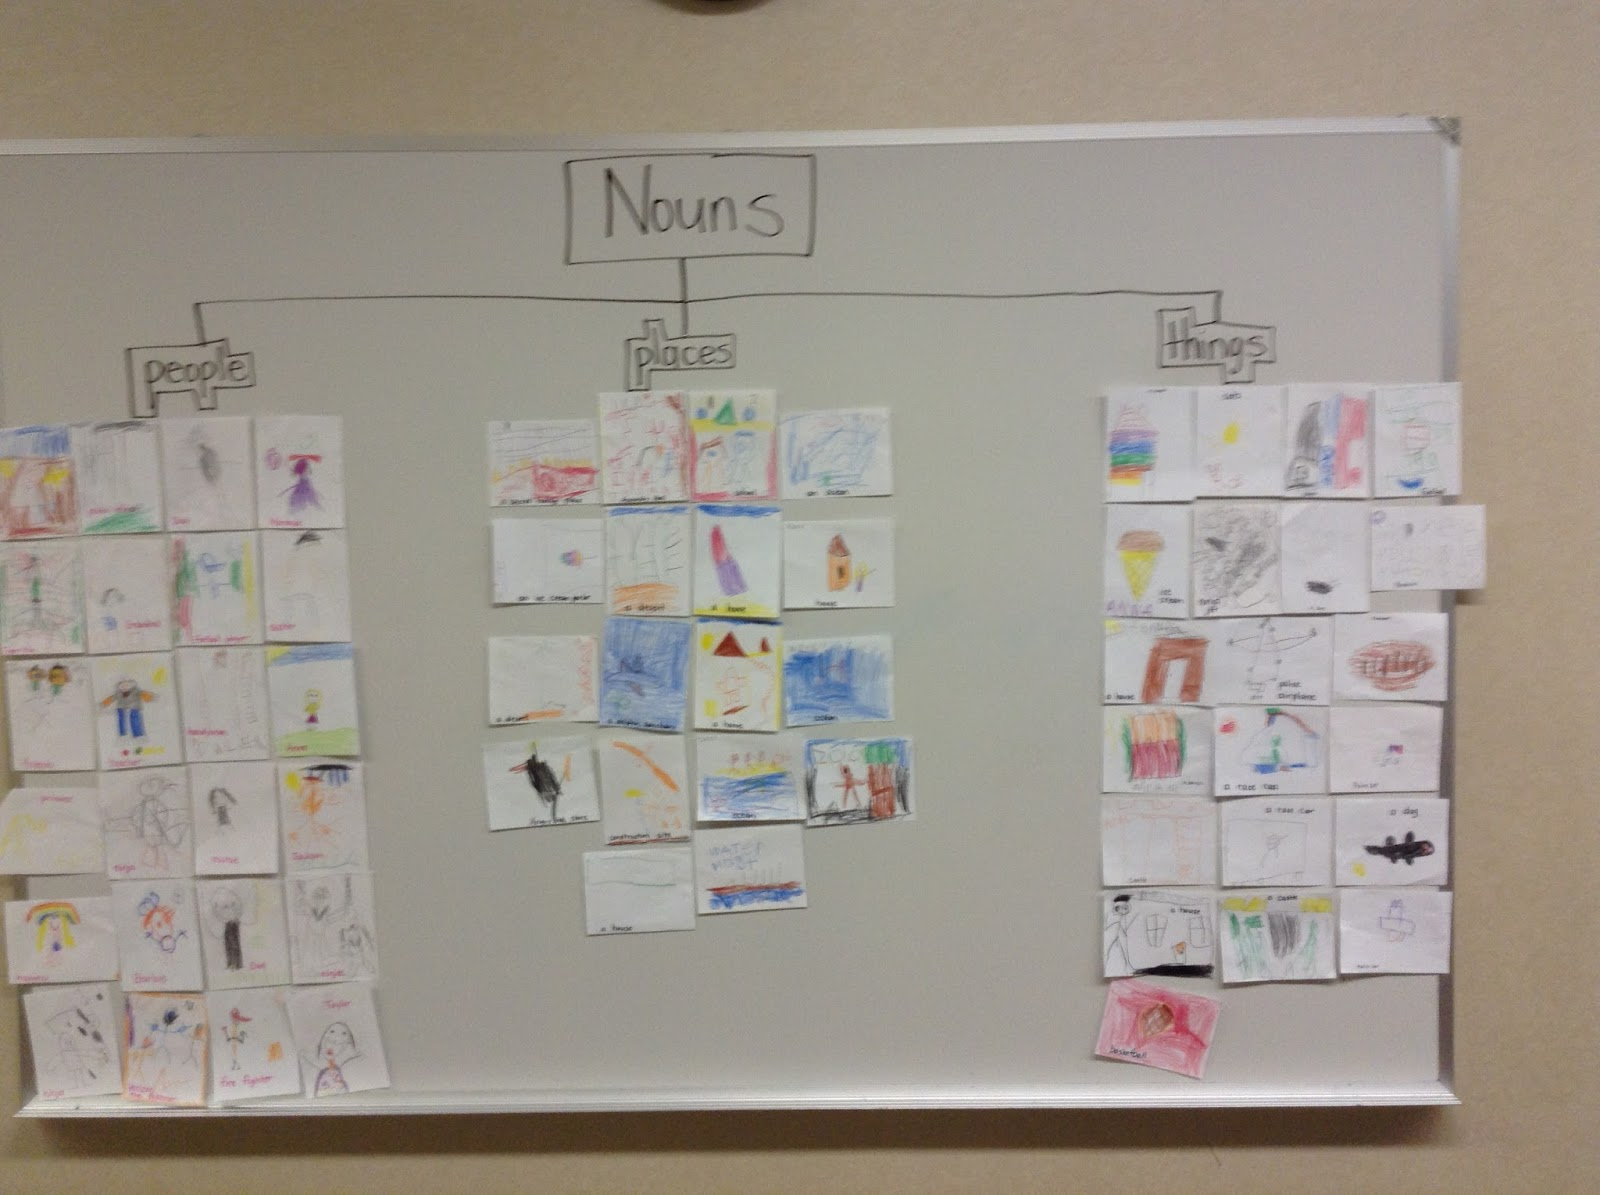 Worksheet Learning About Nouns kindergarten with mrs trammell learning about nouns were weve learned that are people places and things here is a thinking map of the three types nouns